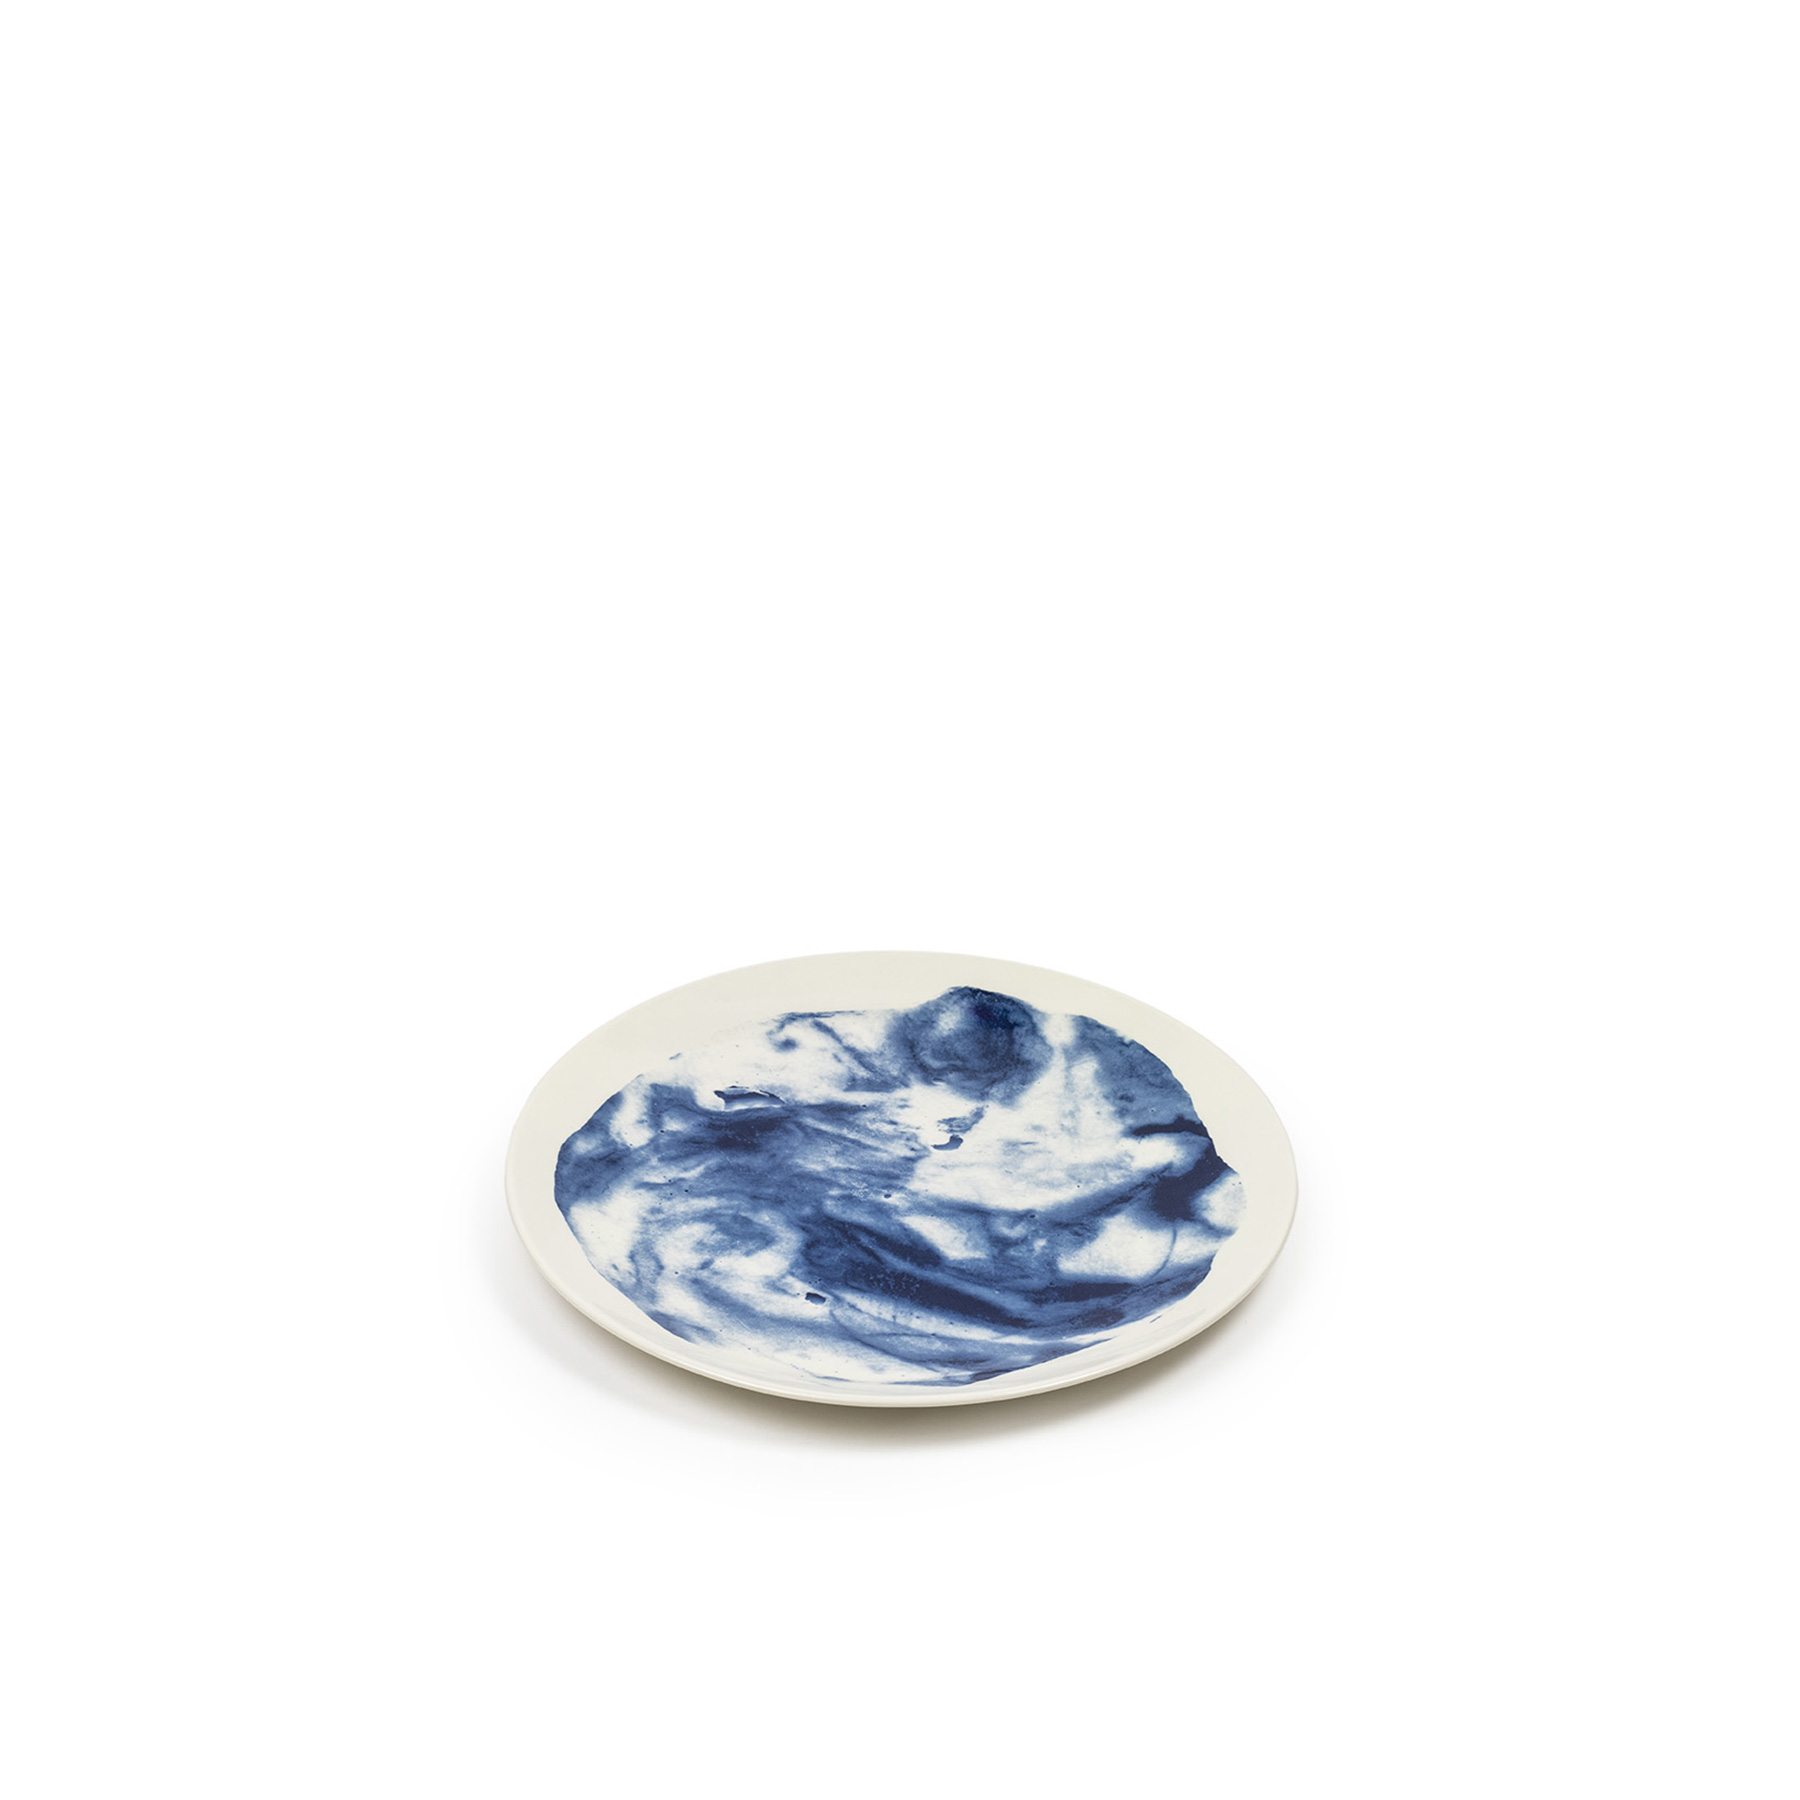 Indigo Storm Dinner Plate - Faye Toogood's range of ceramic designs for 1882 Ltd. celebrates the serendipitous beauty of natural imperfections. Indigo Storm, a new interpretation of traditional creamware forms, draws upon the chance patterns created when pigment added to the slip coating does not fully blend. The whorls and eddies resulting from these experiments, like meteorological formations in miniature, make up the collection's central motifs, appearing on pieces including plates, bowls and cups. Representing a streamlined take on our ceramic heritage, the fine earthenware employs the familiar tones of English Delftware: cream offset with a rich, deep blue. Dishwasher and Microwave safe.